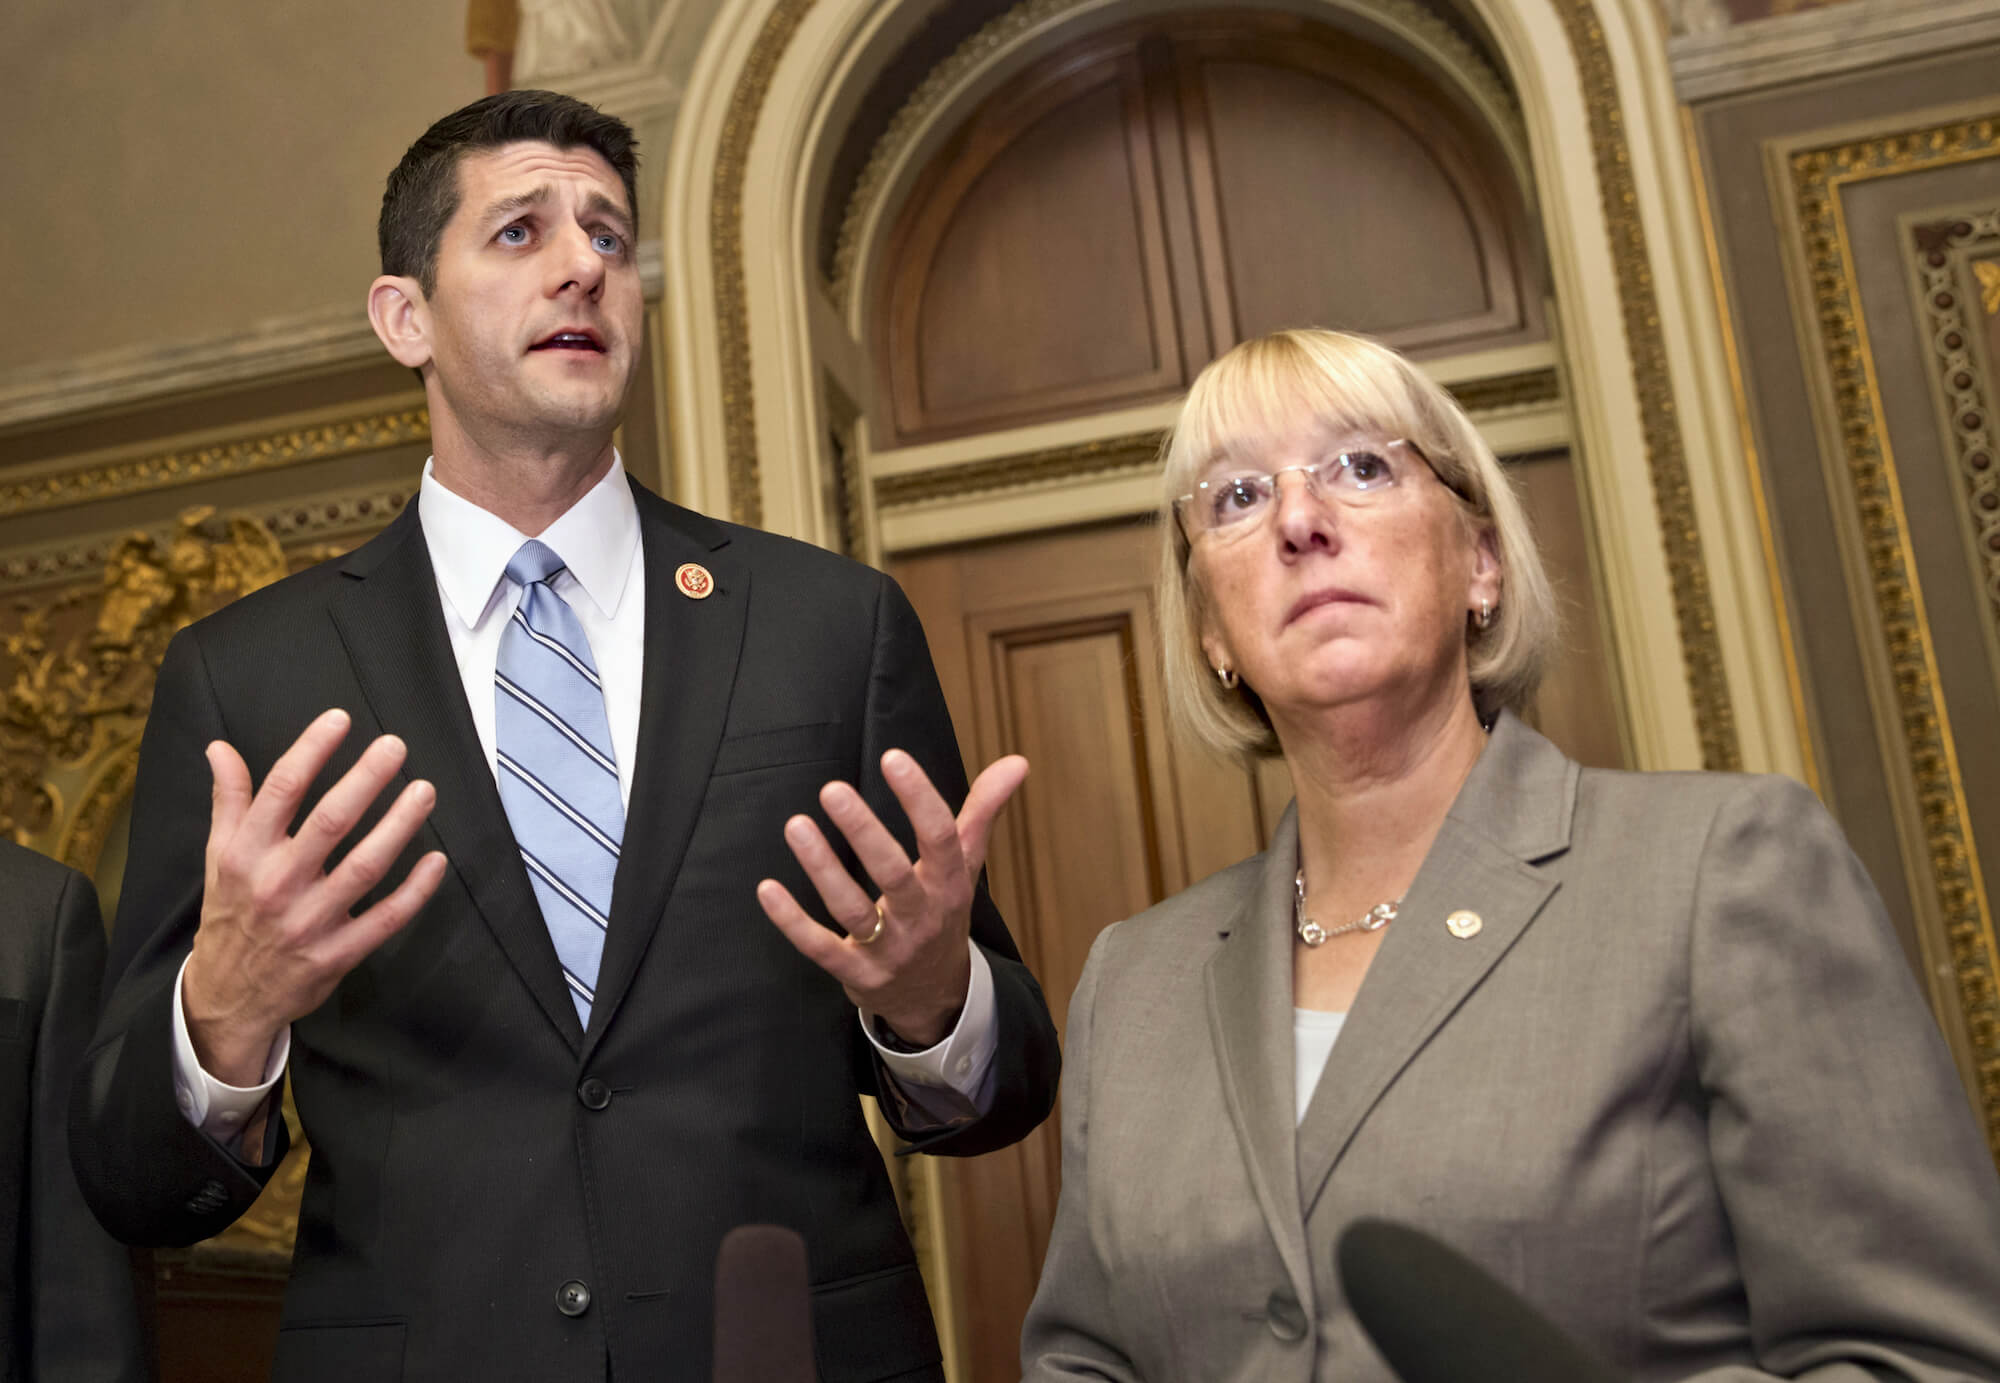 The Commission on Evidence-Based Policymaking was formed in response to a bill sponsored by Speaker of the House Paul Ryan and Senator Patty Murray (AP Photo/ Scott Applewhite, File)